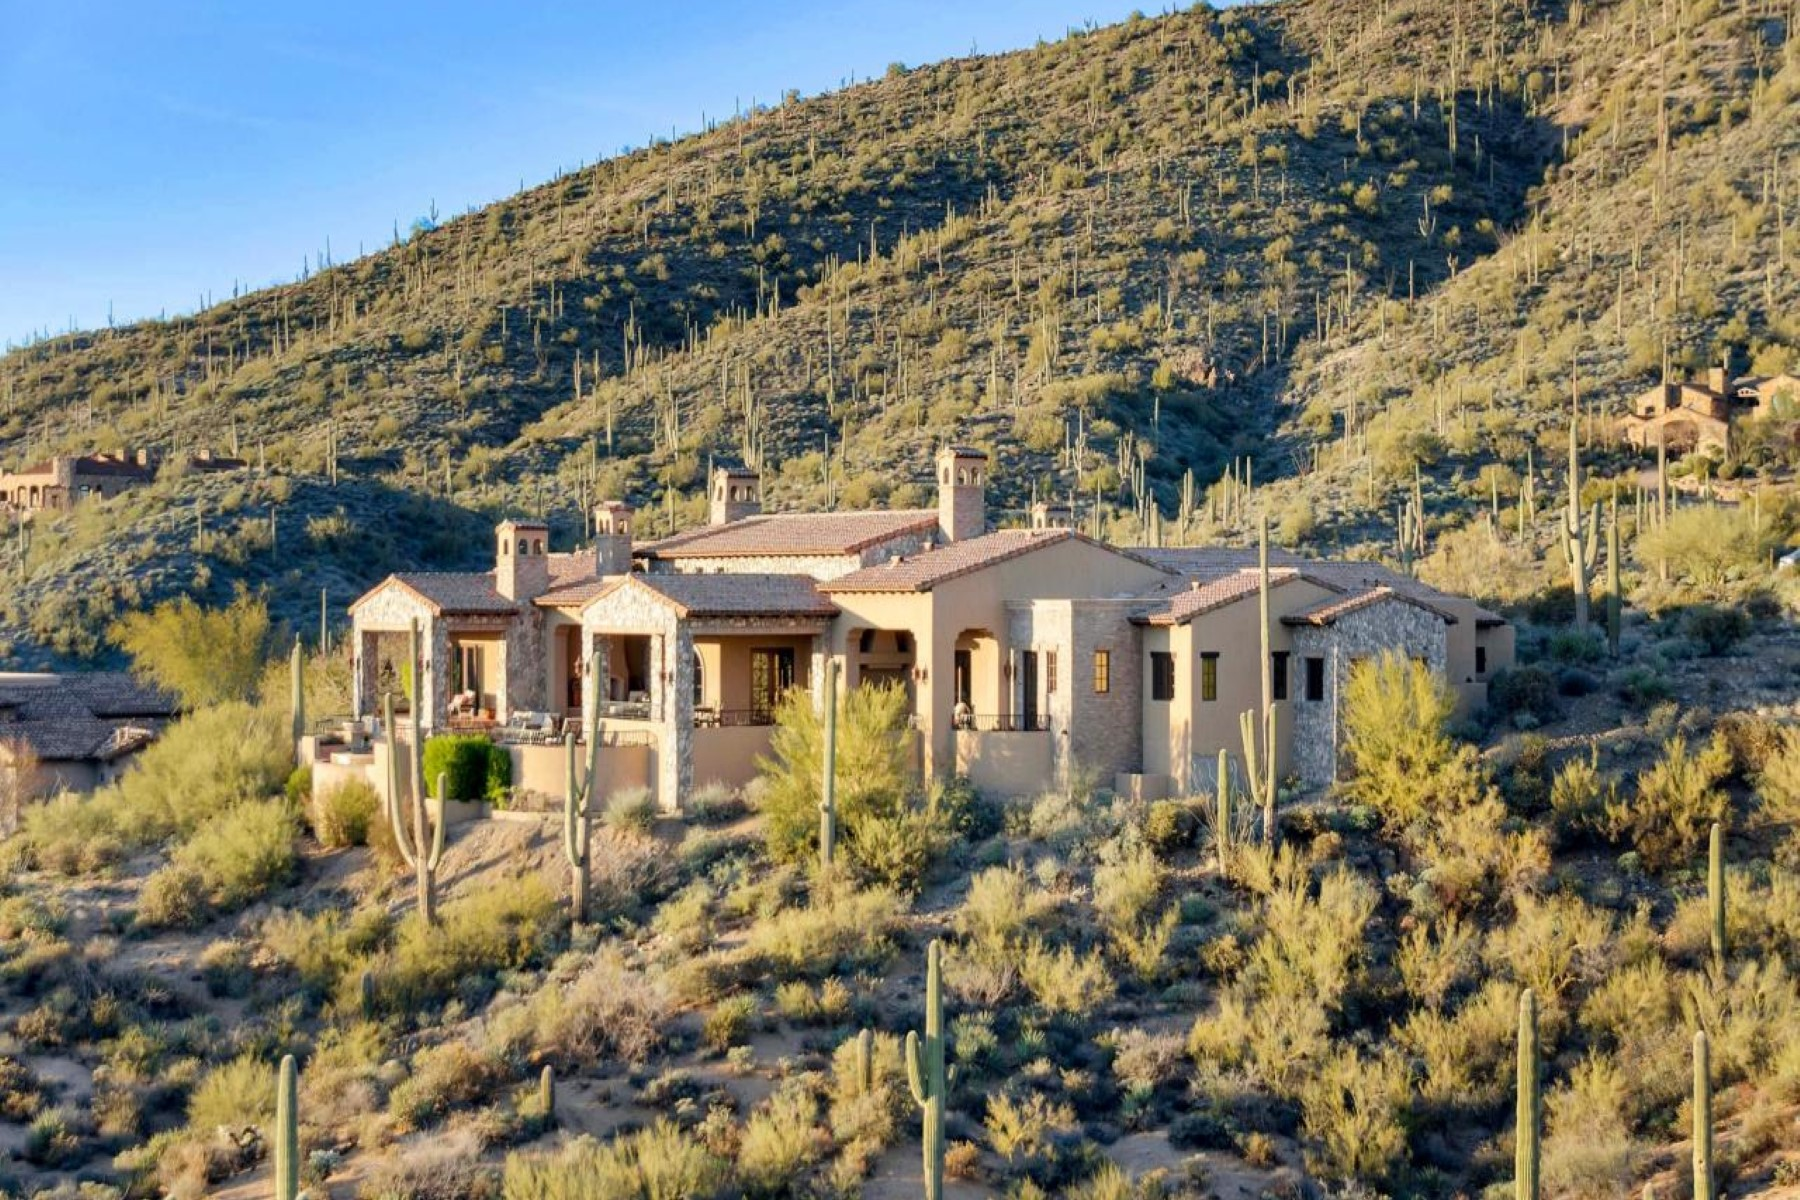 一戸建て のために 売買 アット Tuscan andalusian style home offers unparalleled views 9919 E Sienna Hills Dr Scottsdale, アリゾナ, 85262 アメリカ合衆国